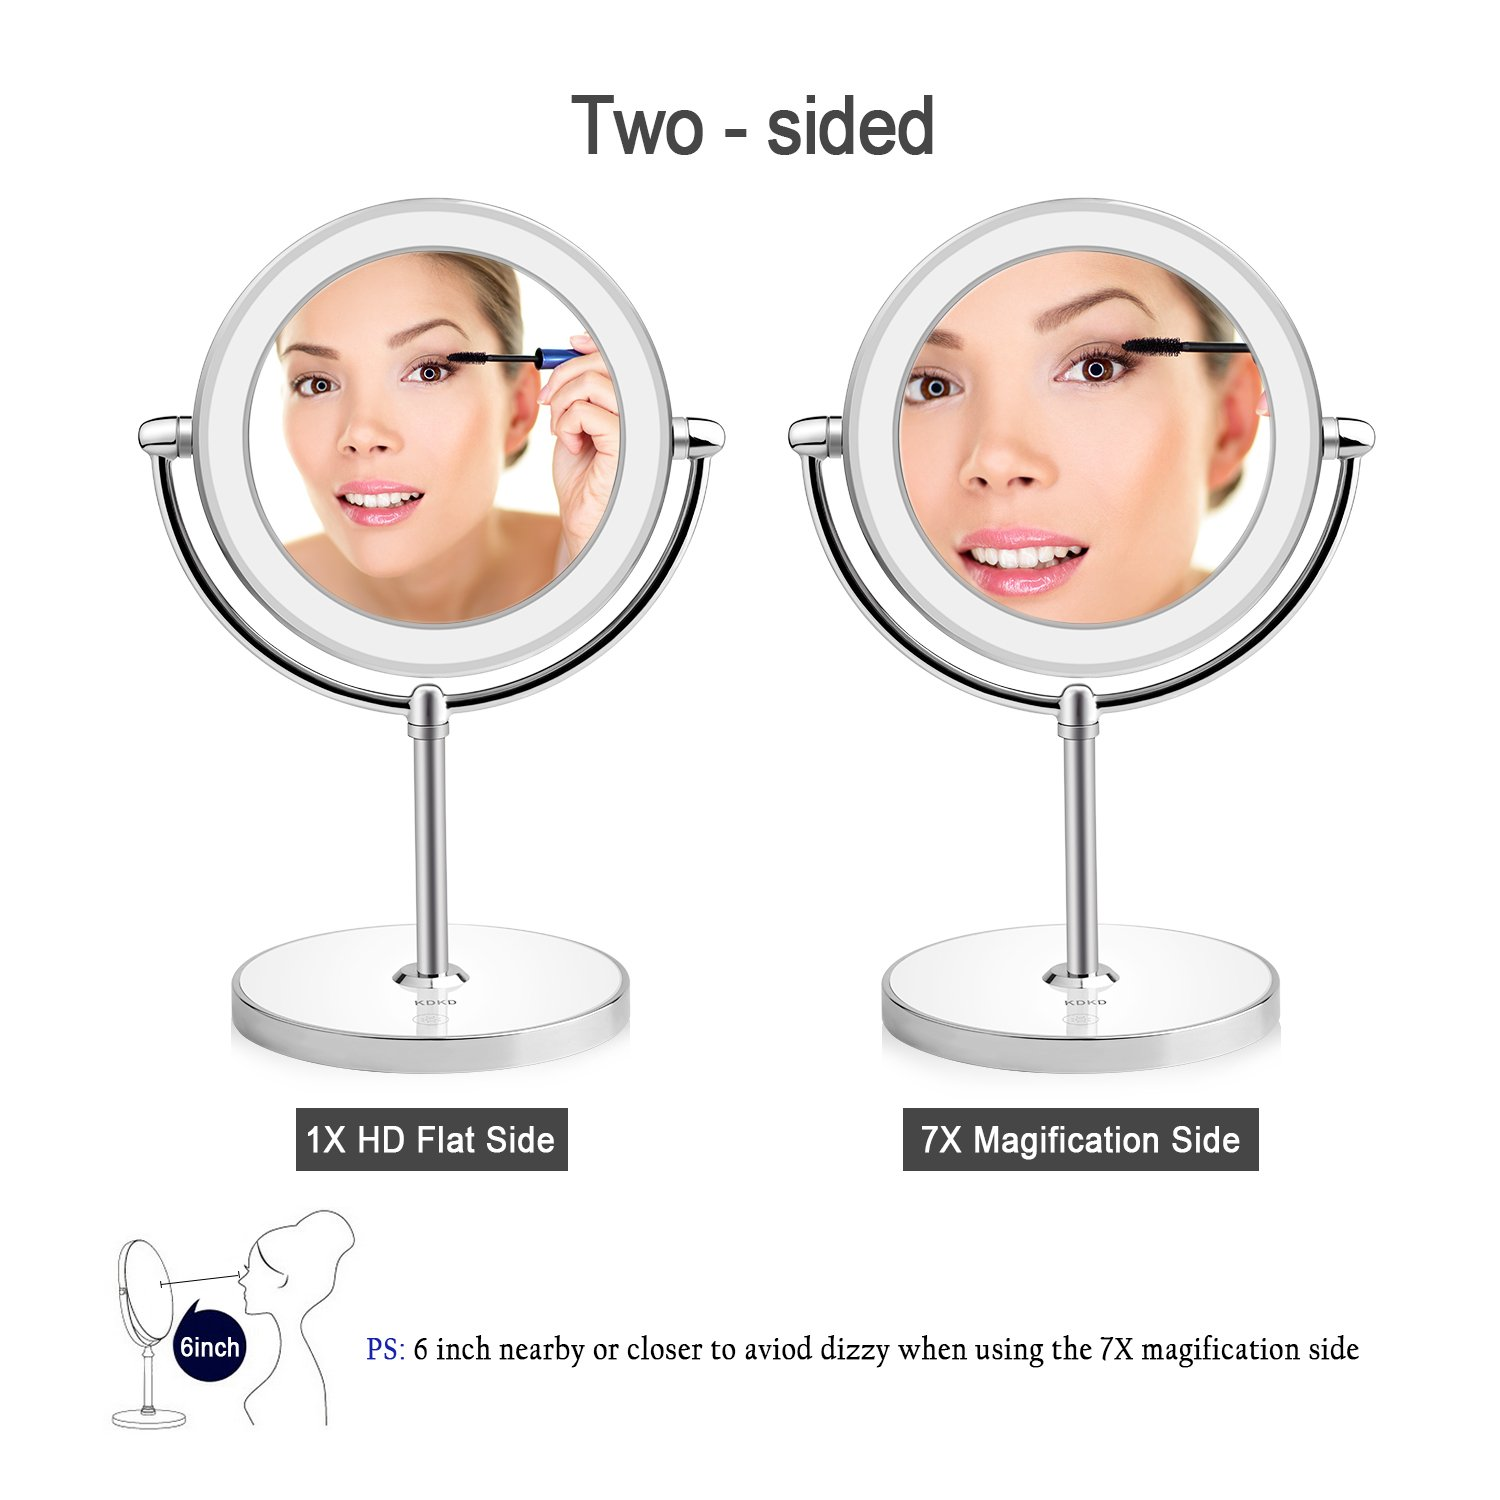 KDKD Lighted Makeup Mirror 1X 7X Magnification Double Sided Round Shape with Base Touch Button, Cordless and Rechargeable by KDKD (Image #4)